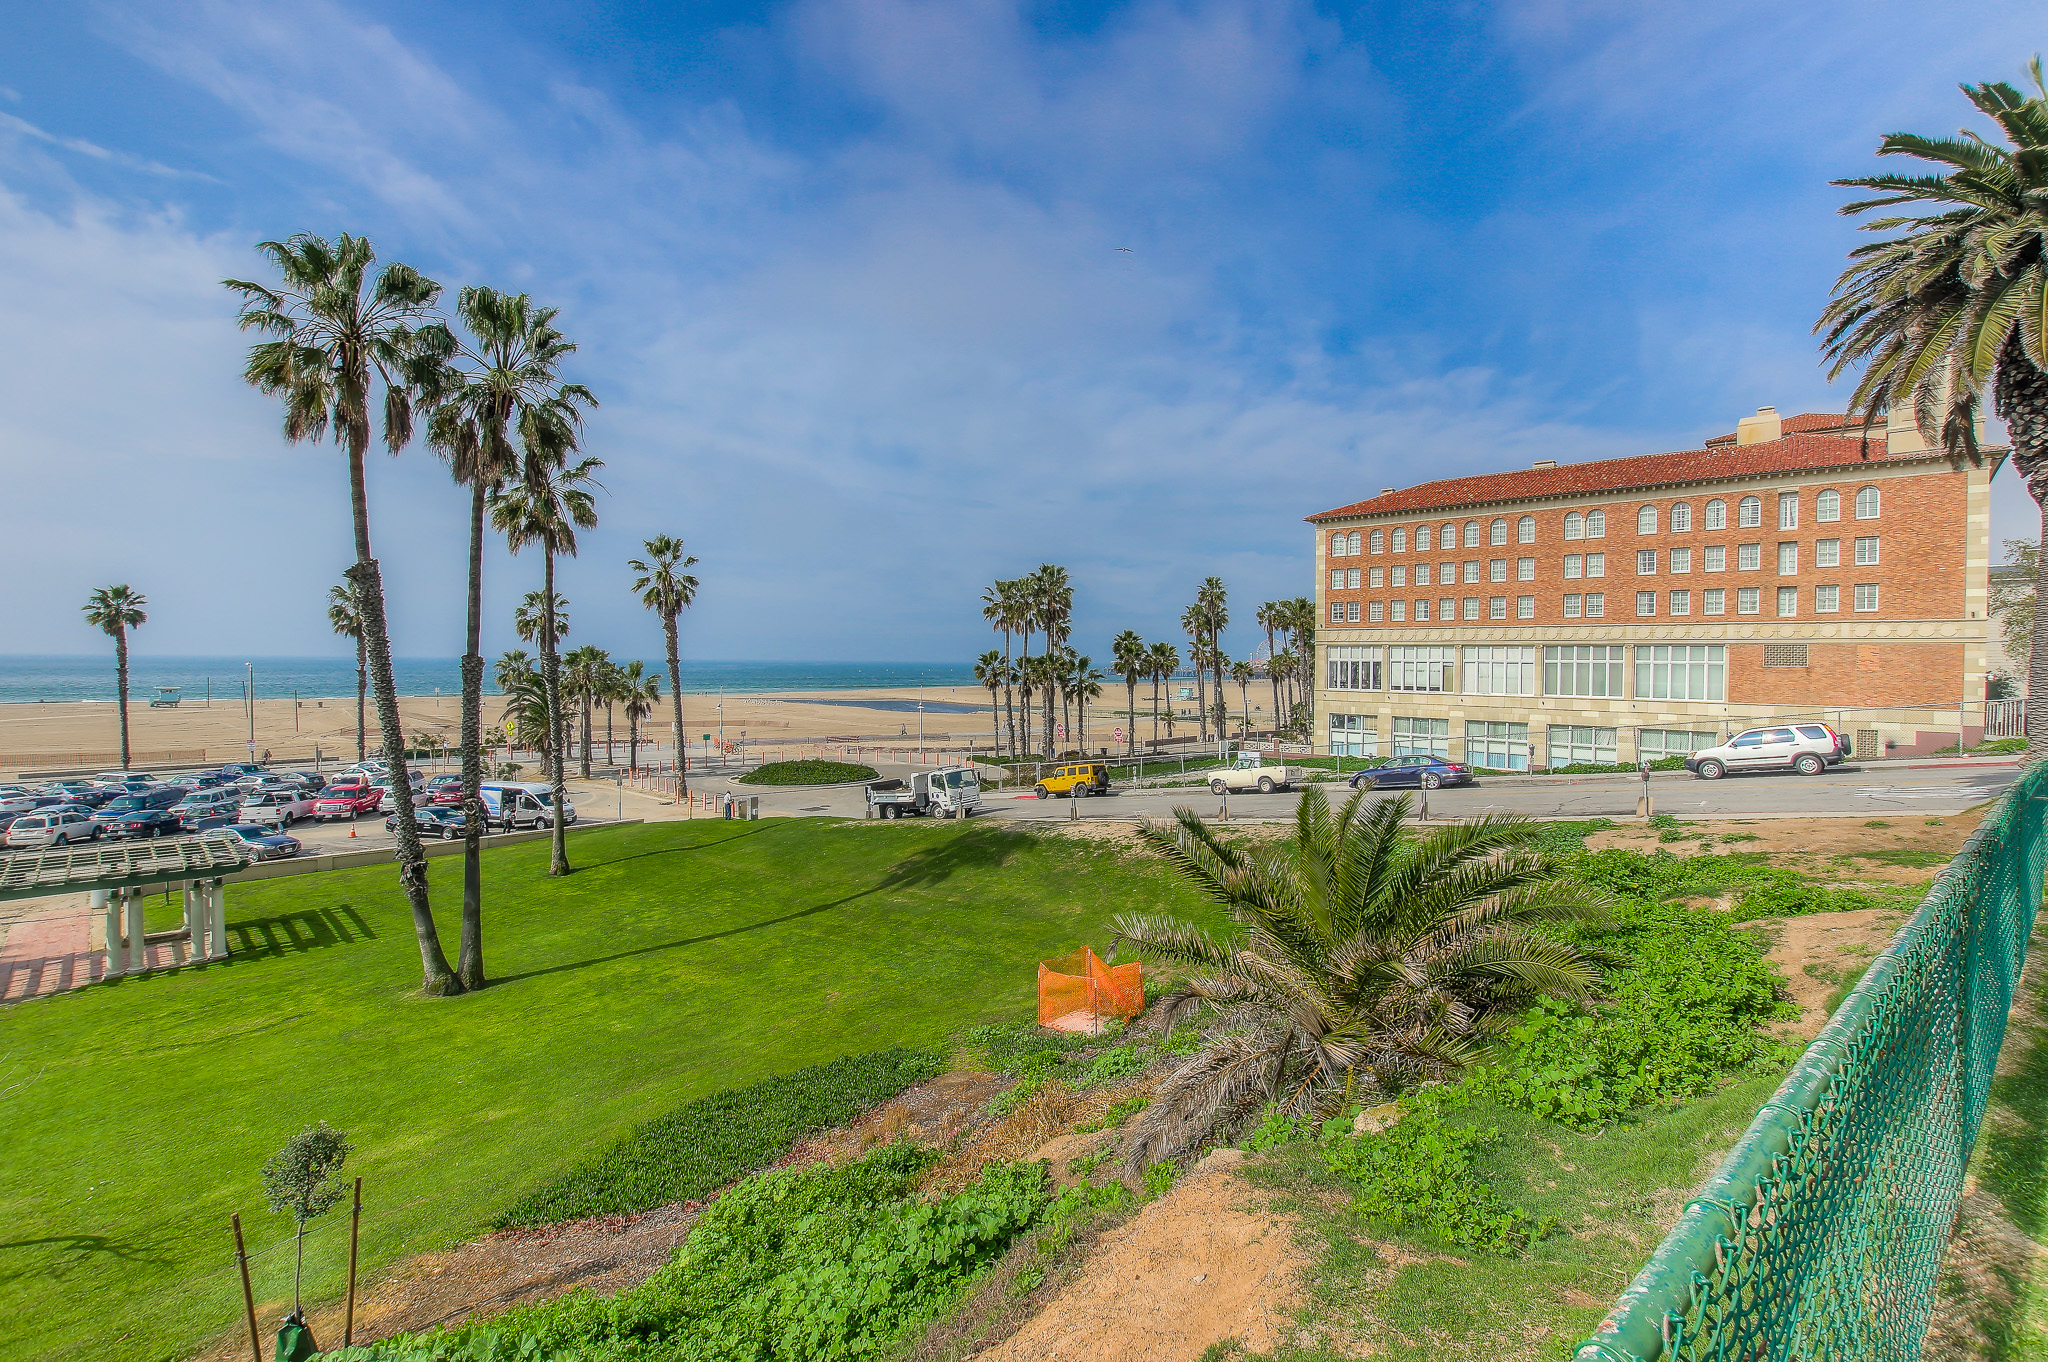 Santa monica apartments corporate housing in los angeles for Mls rentals los angeles